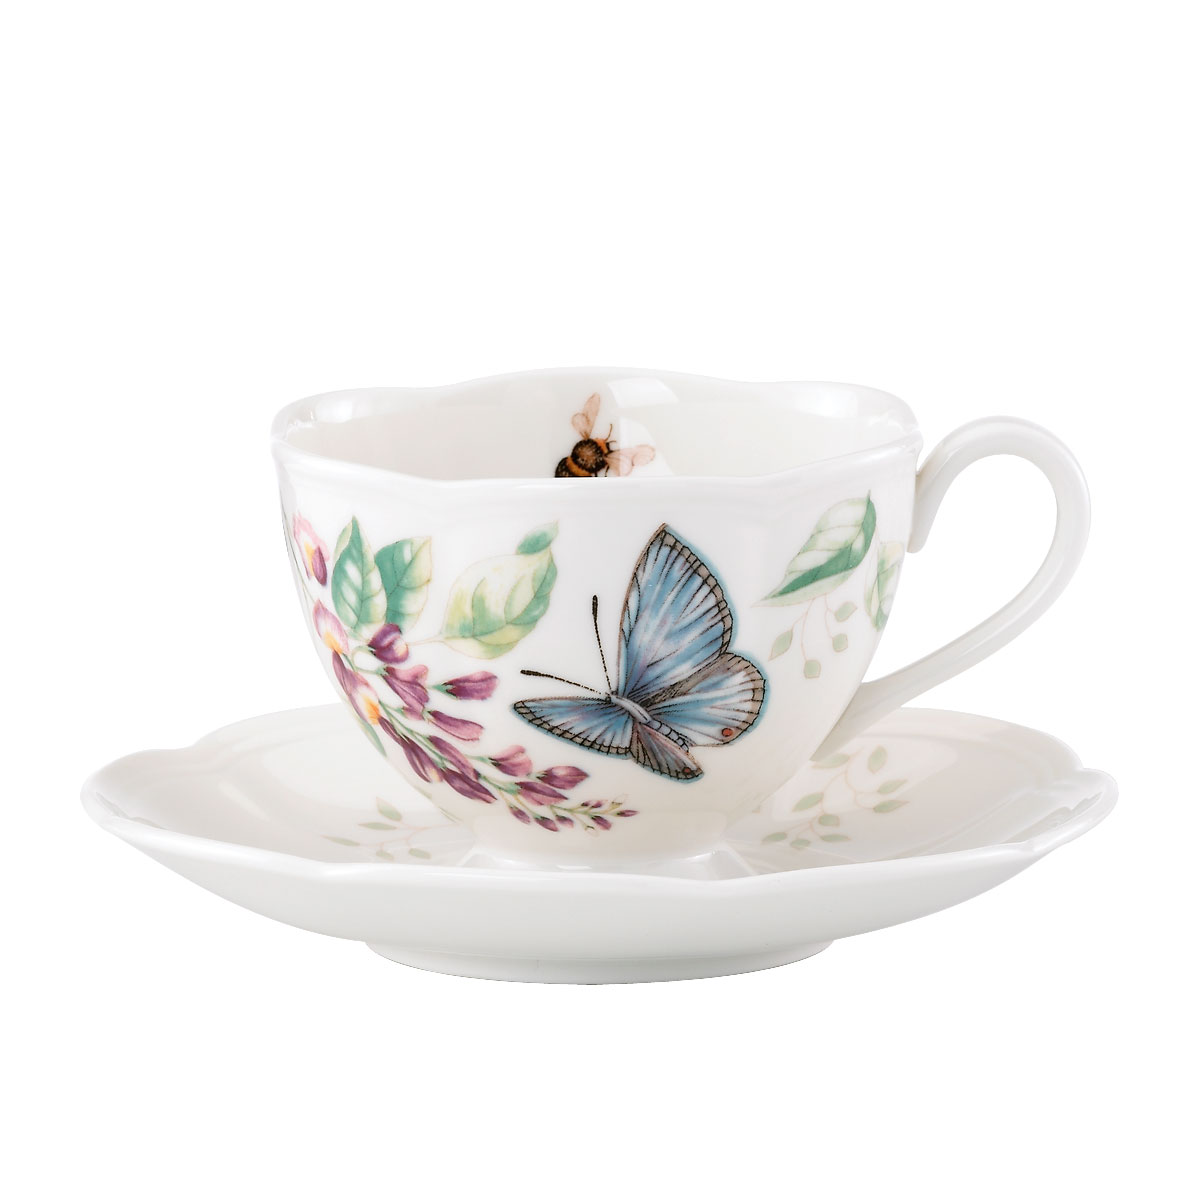 Lenox Butterfly Meadow Dinnerware Blue Butterlfy Cup And Saucer